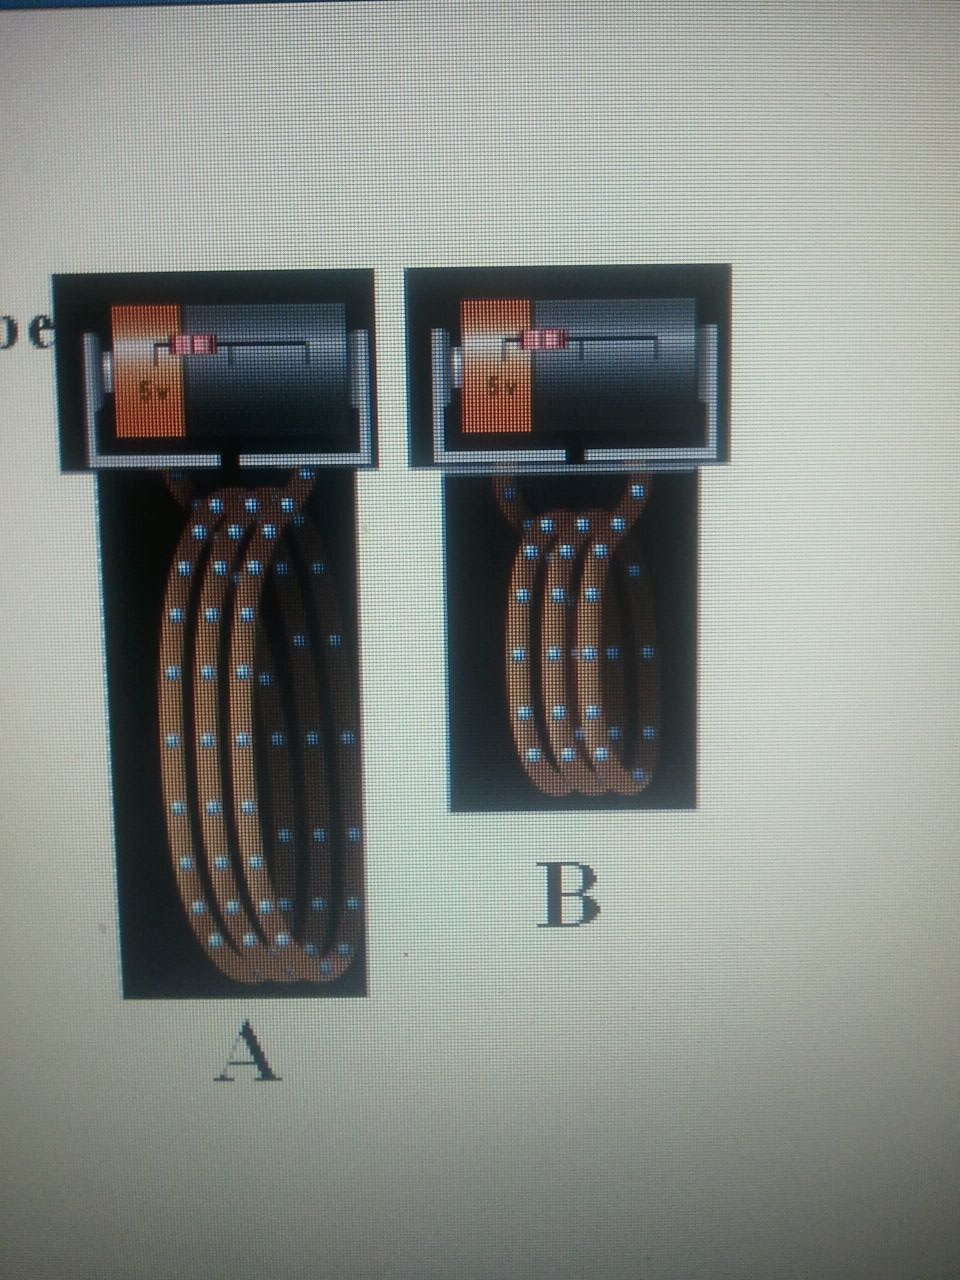 which would be a more strong magnet A.A B.B C. The